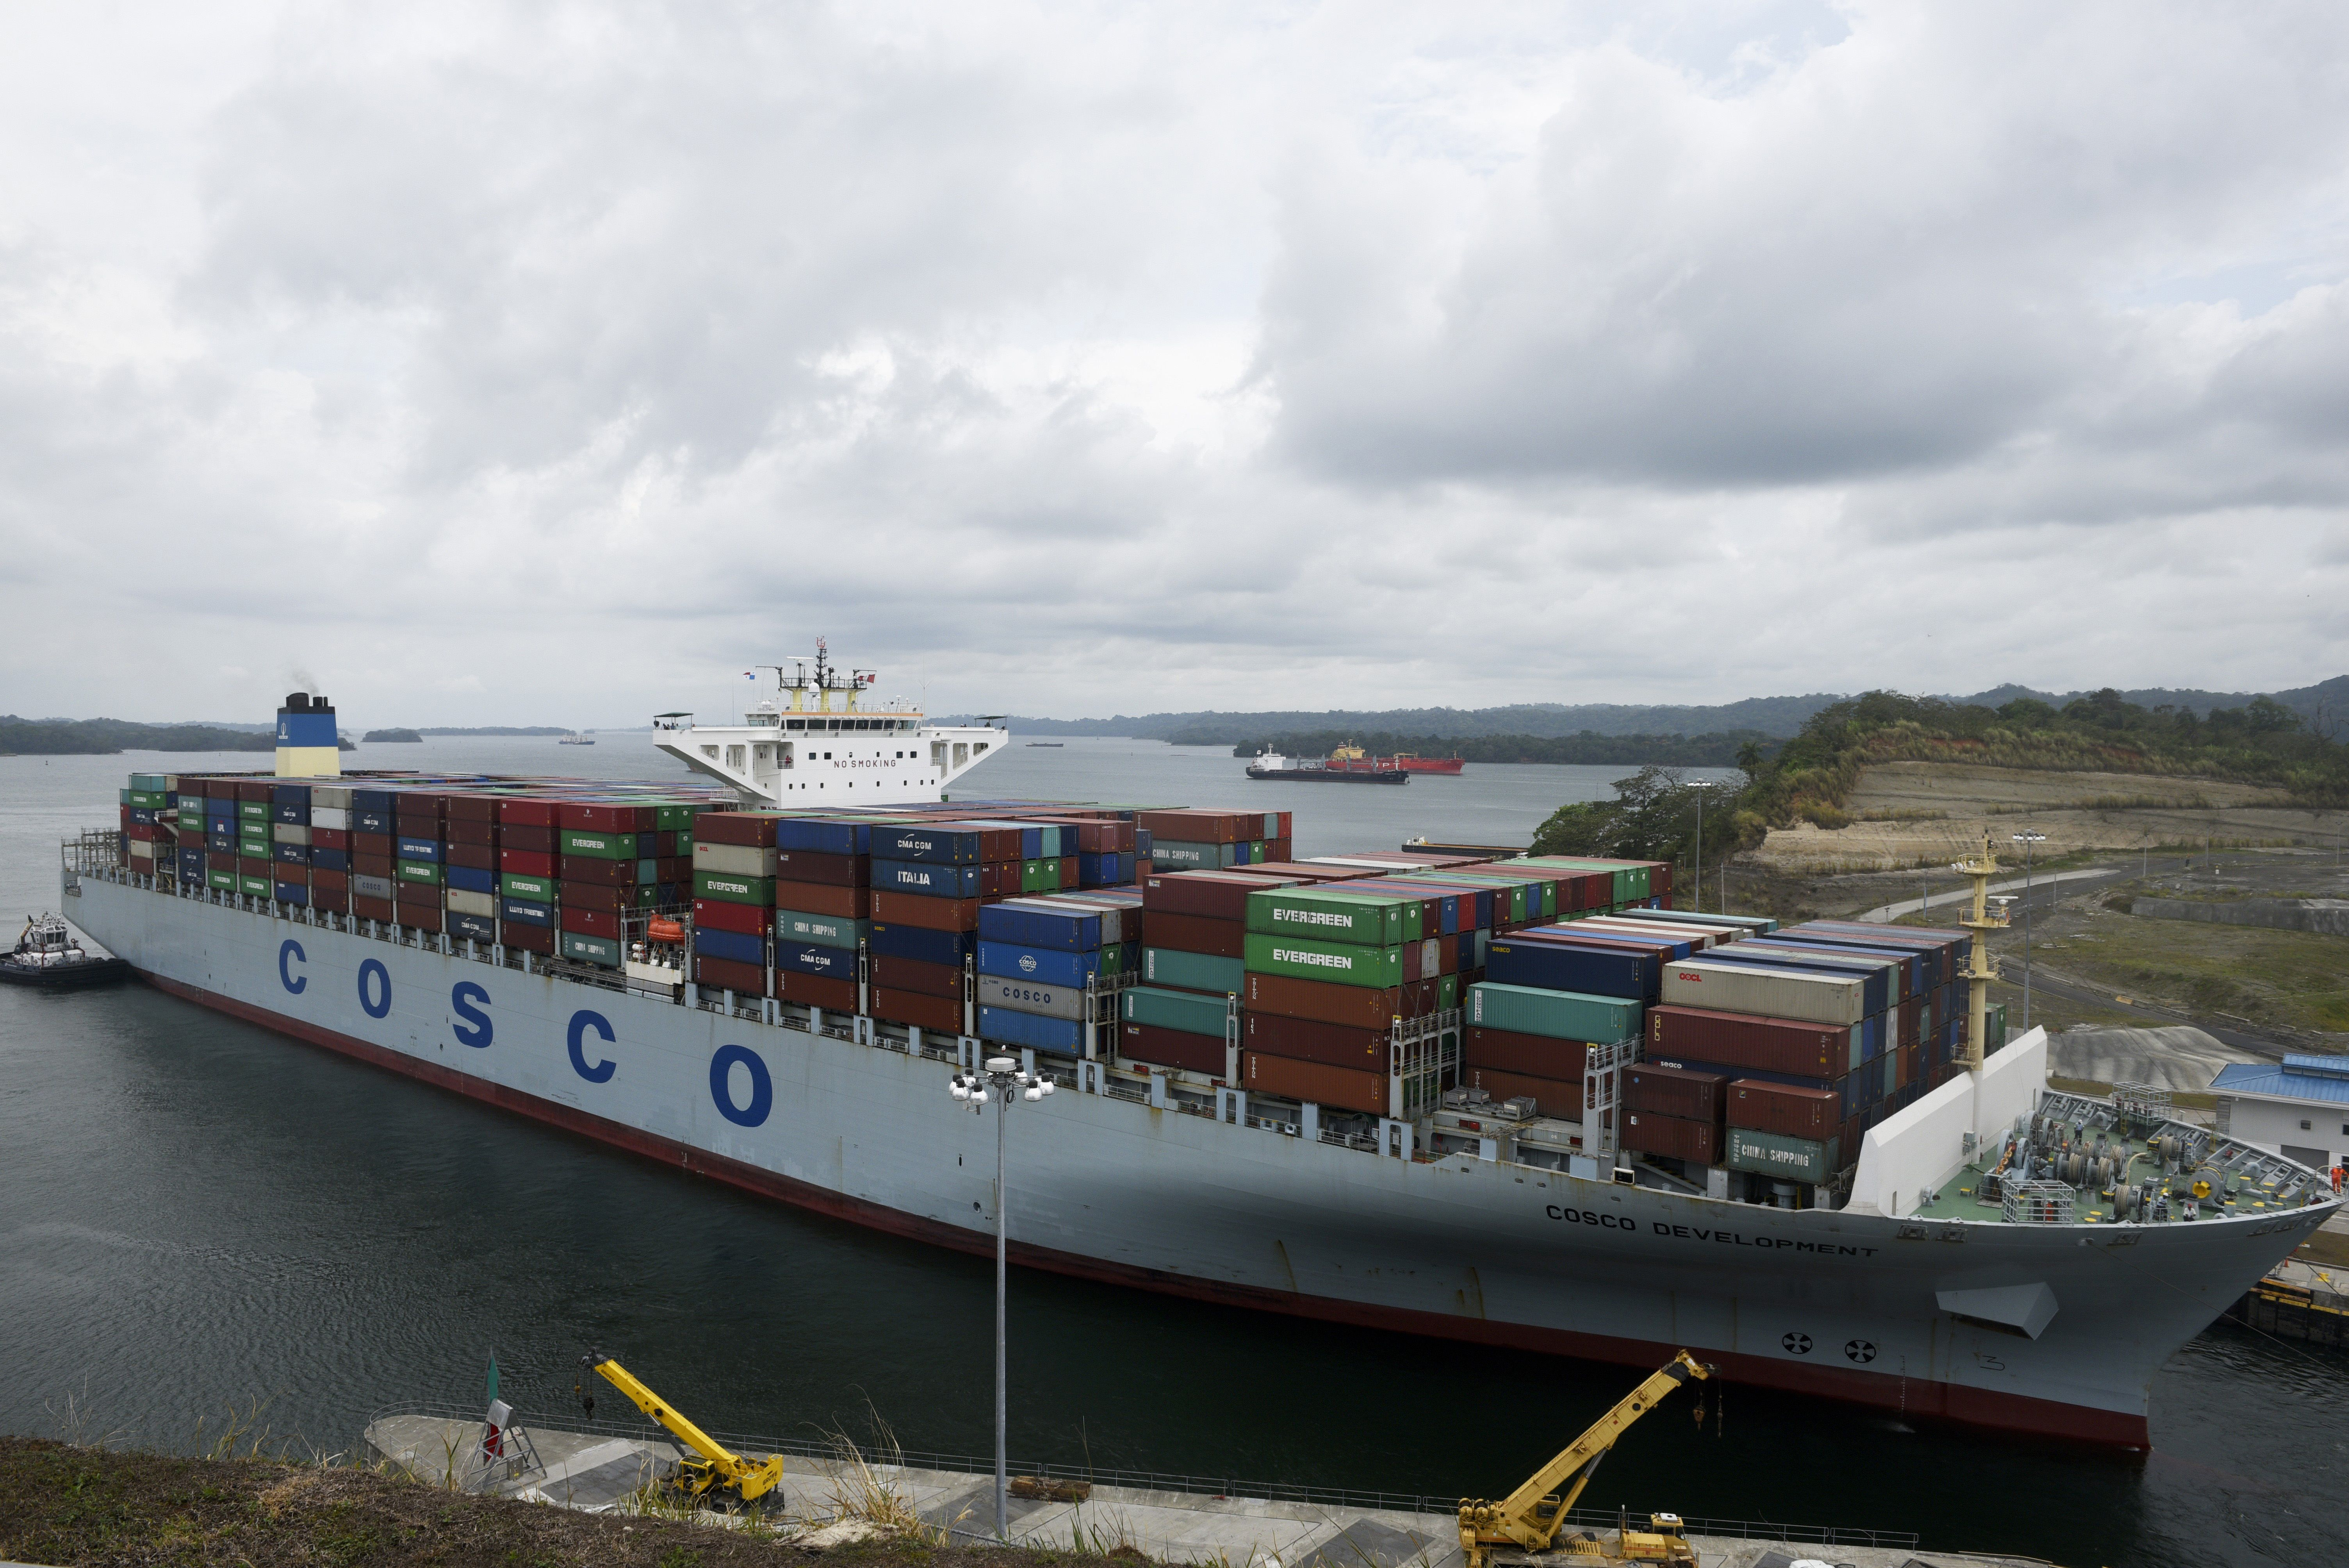 A Cosco container ship is seen near Panama City.